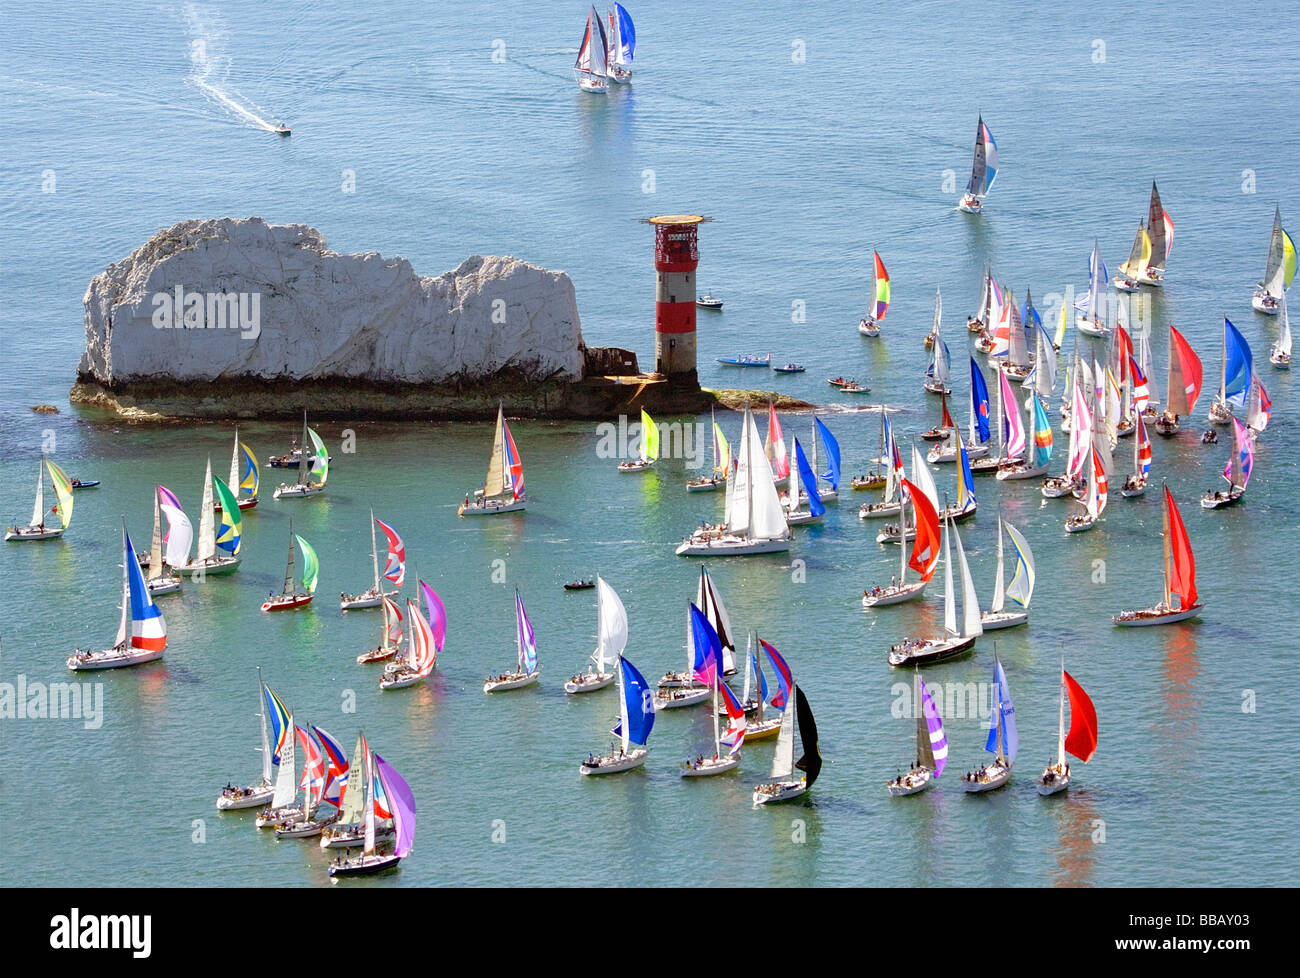 aerial-view-of-yachts-competing-in-the-r